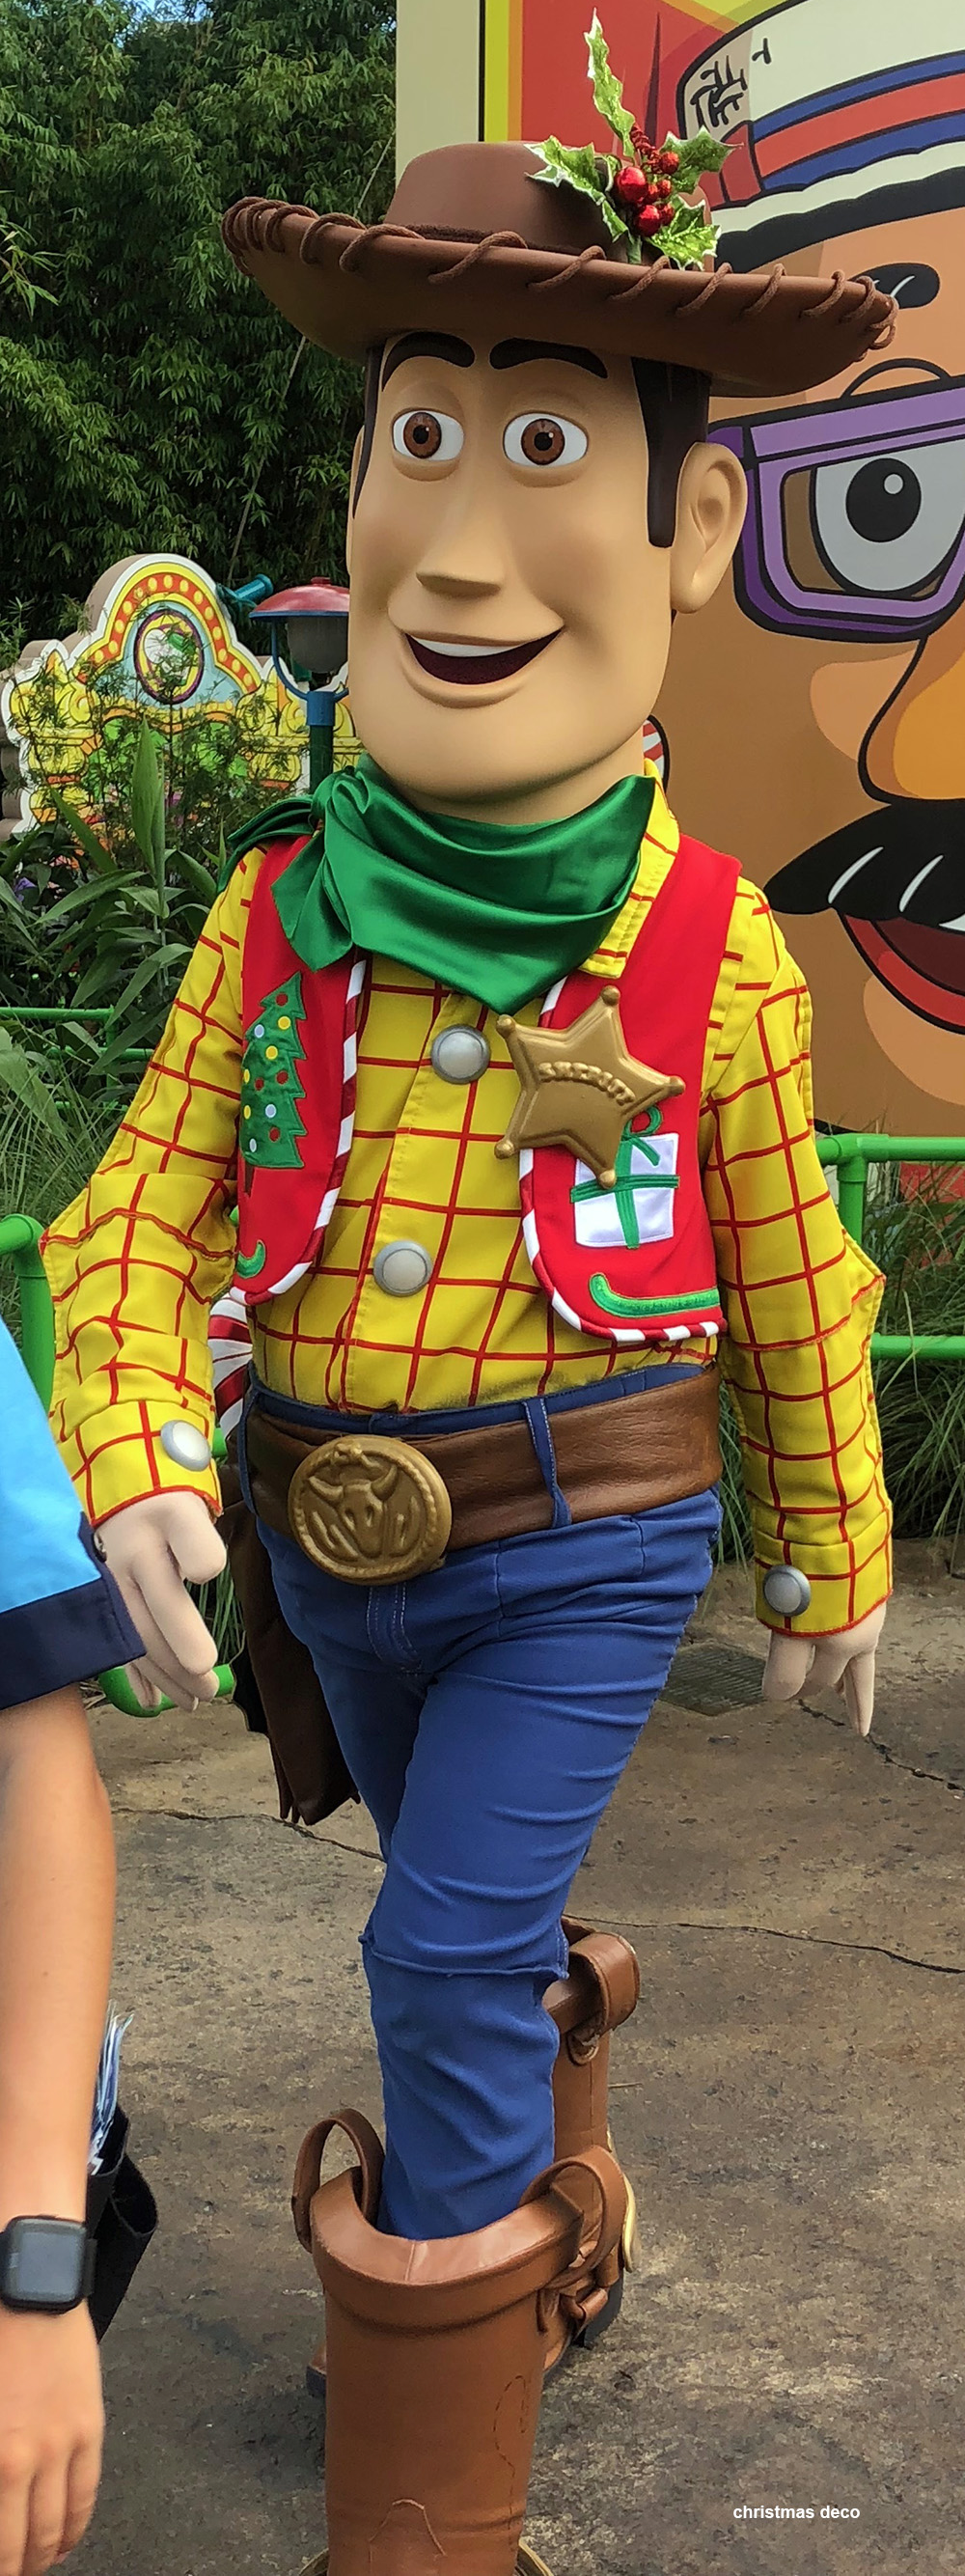 Toy Story Holidays : Toy story land at disney s hollywood studios gets holiday